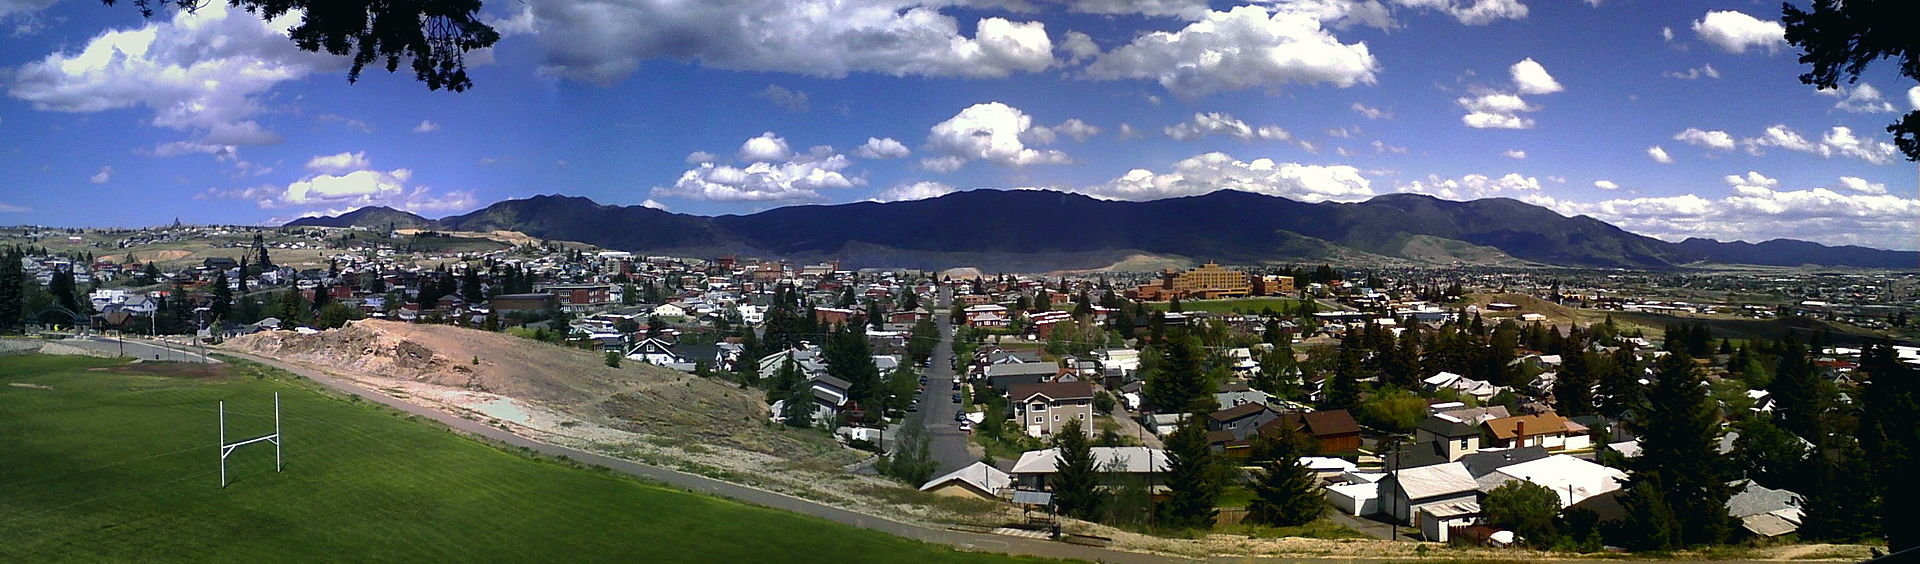 Butte-Panorama_01